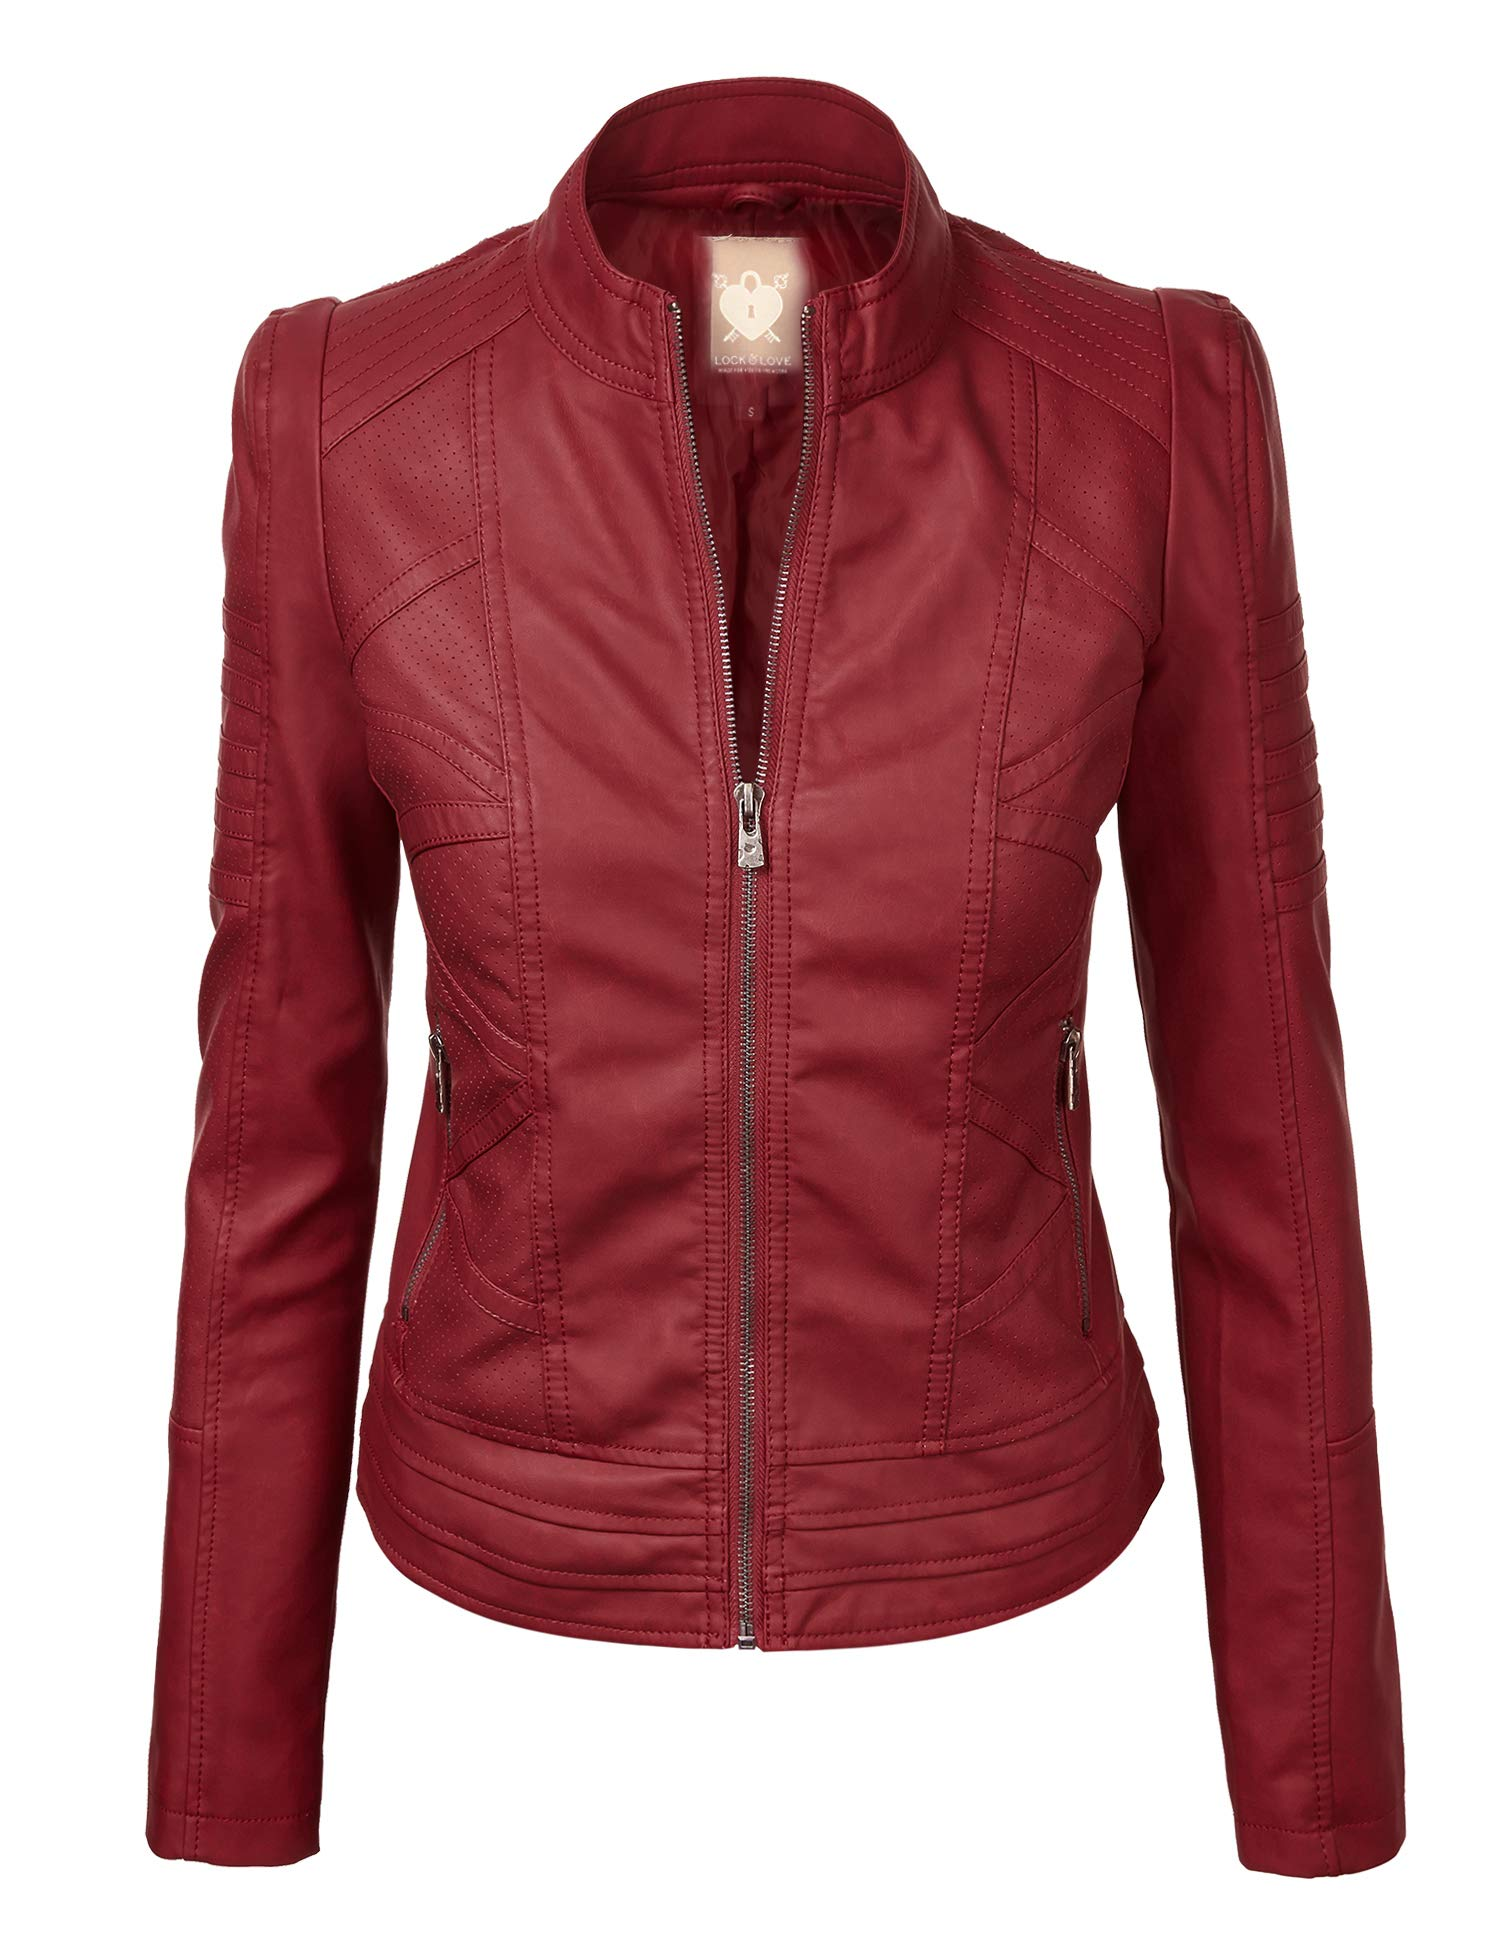 Lock and Love LL WJC746 Womens Vegan Leather Motorcycle Jacket M Wine